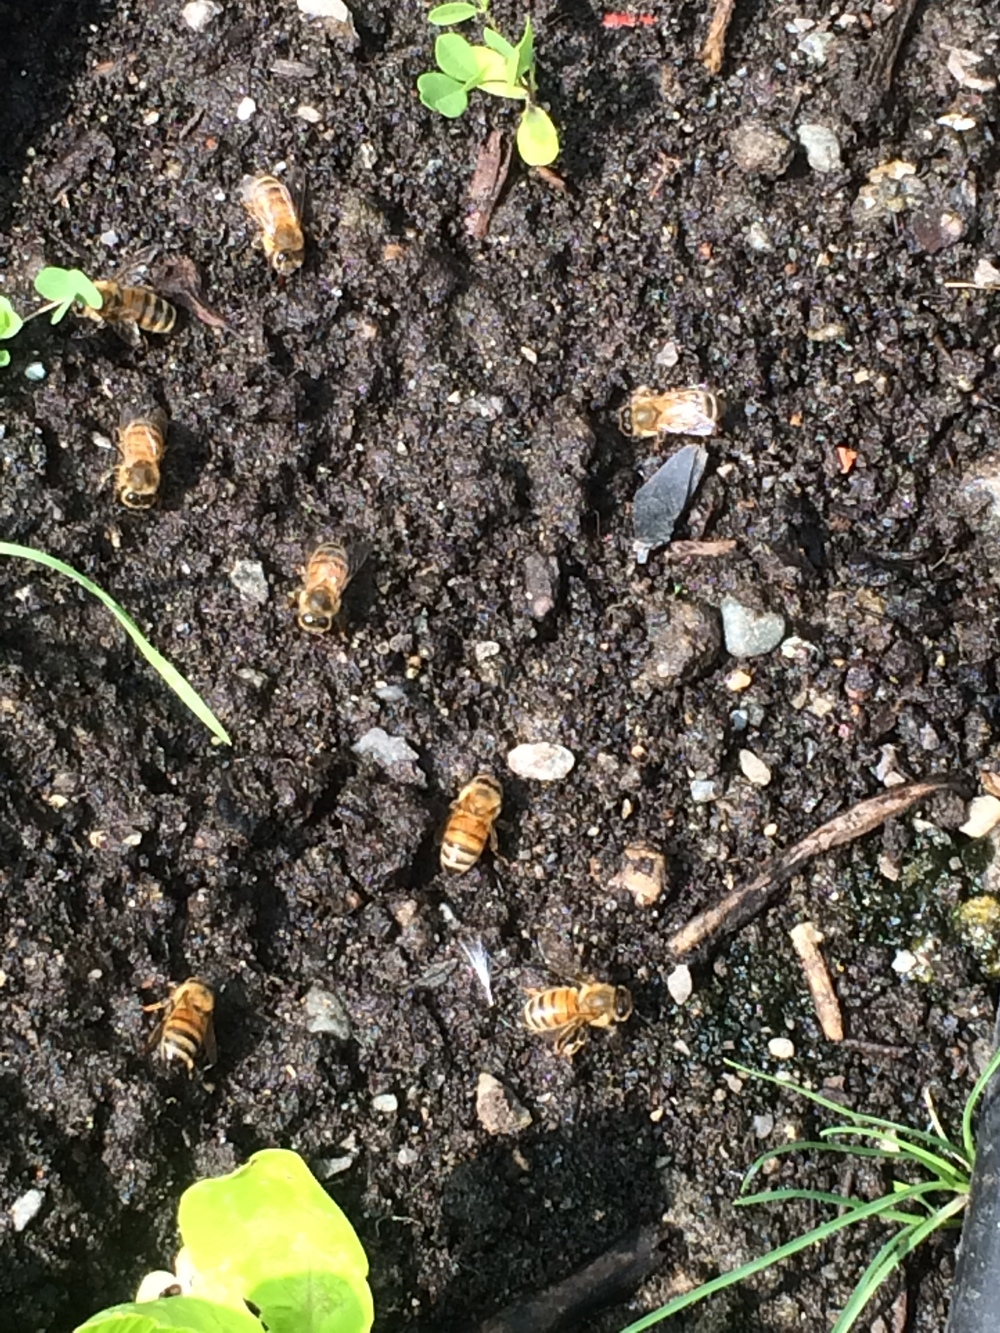 Honeybees drinking water from the soil.